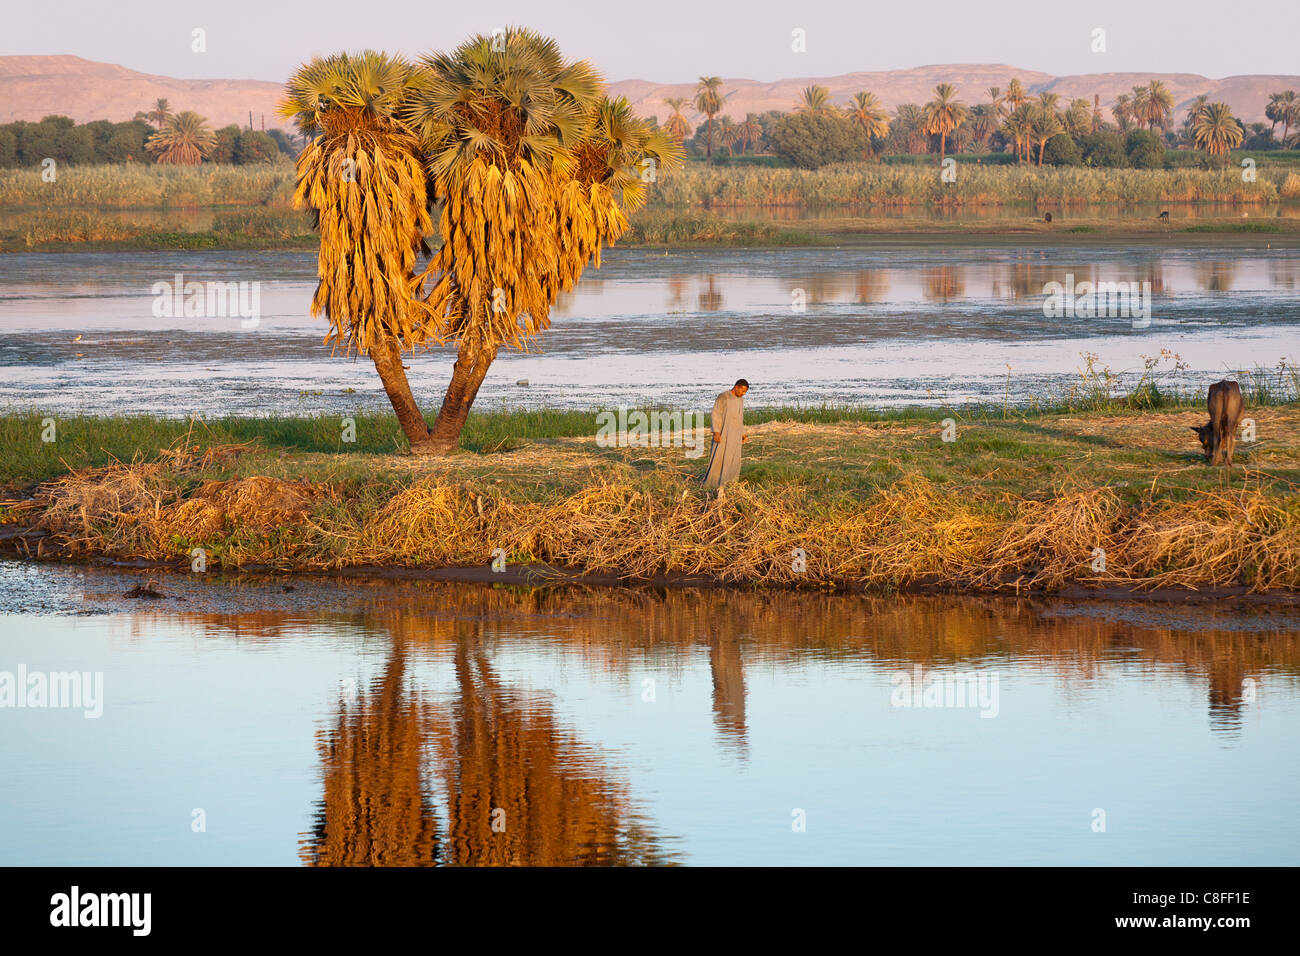 A section of Nile river bank with small island and solitary man, palm and cow all reflected in the mirror like water, - Stock Image